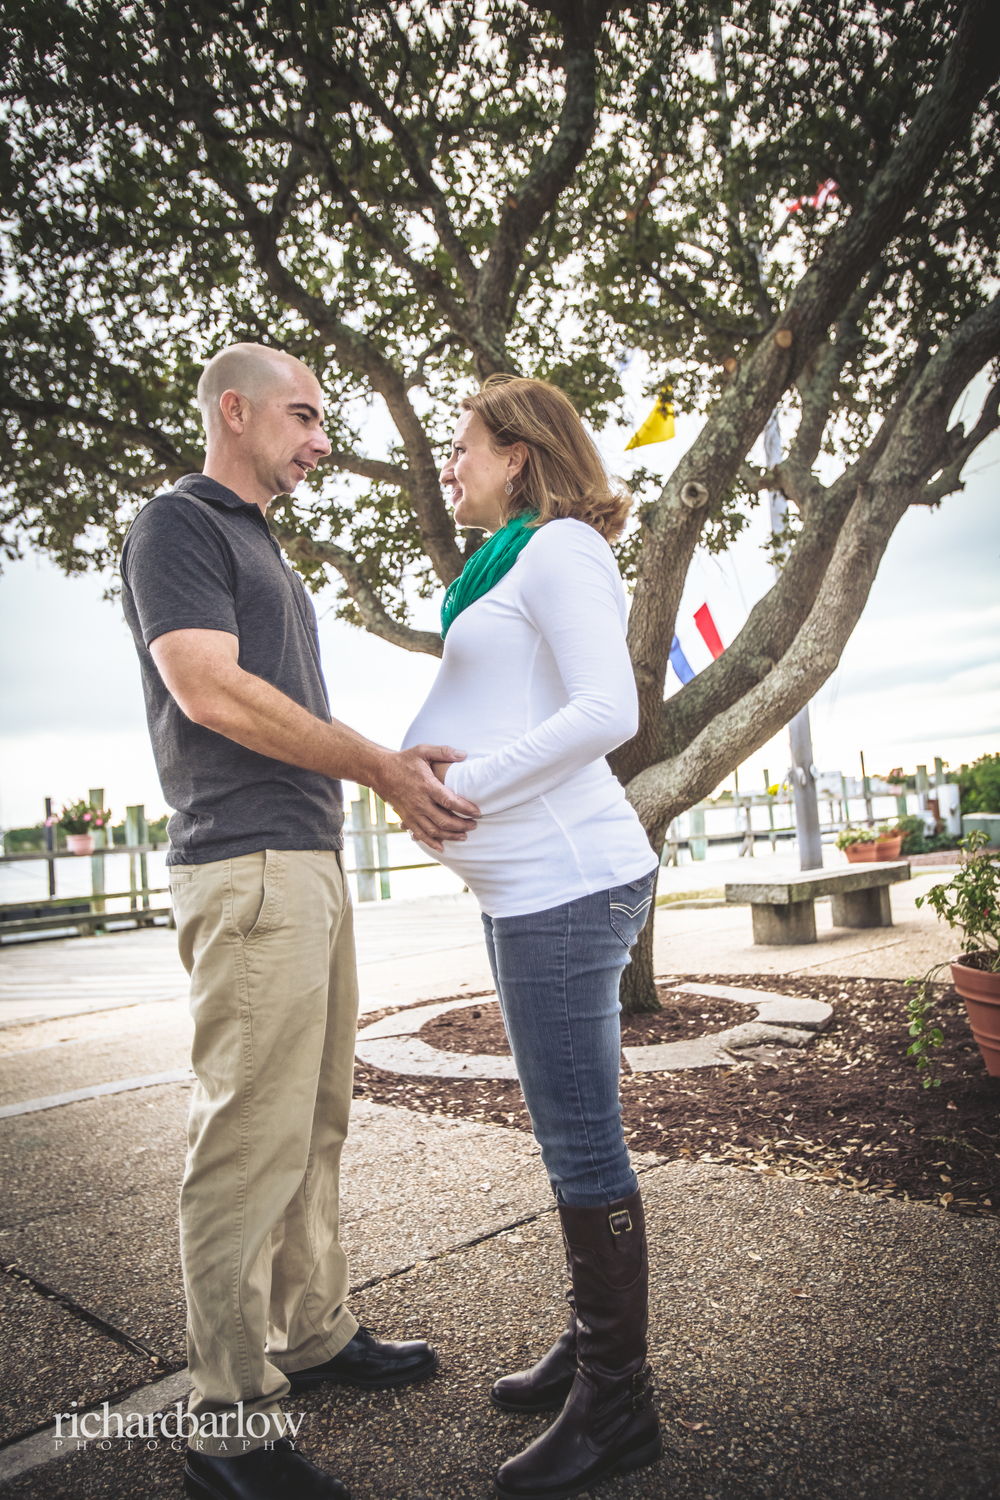 richard barlow photography - Sarah Maternity Session - Beaufort waterfront-20.jpg